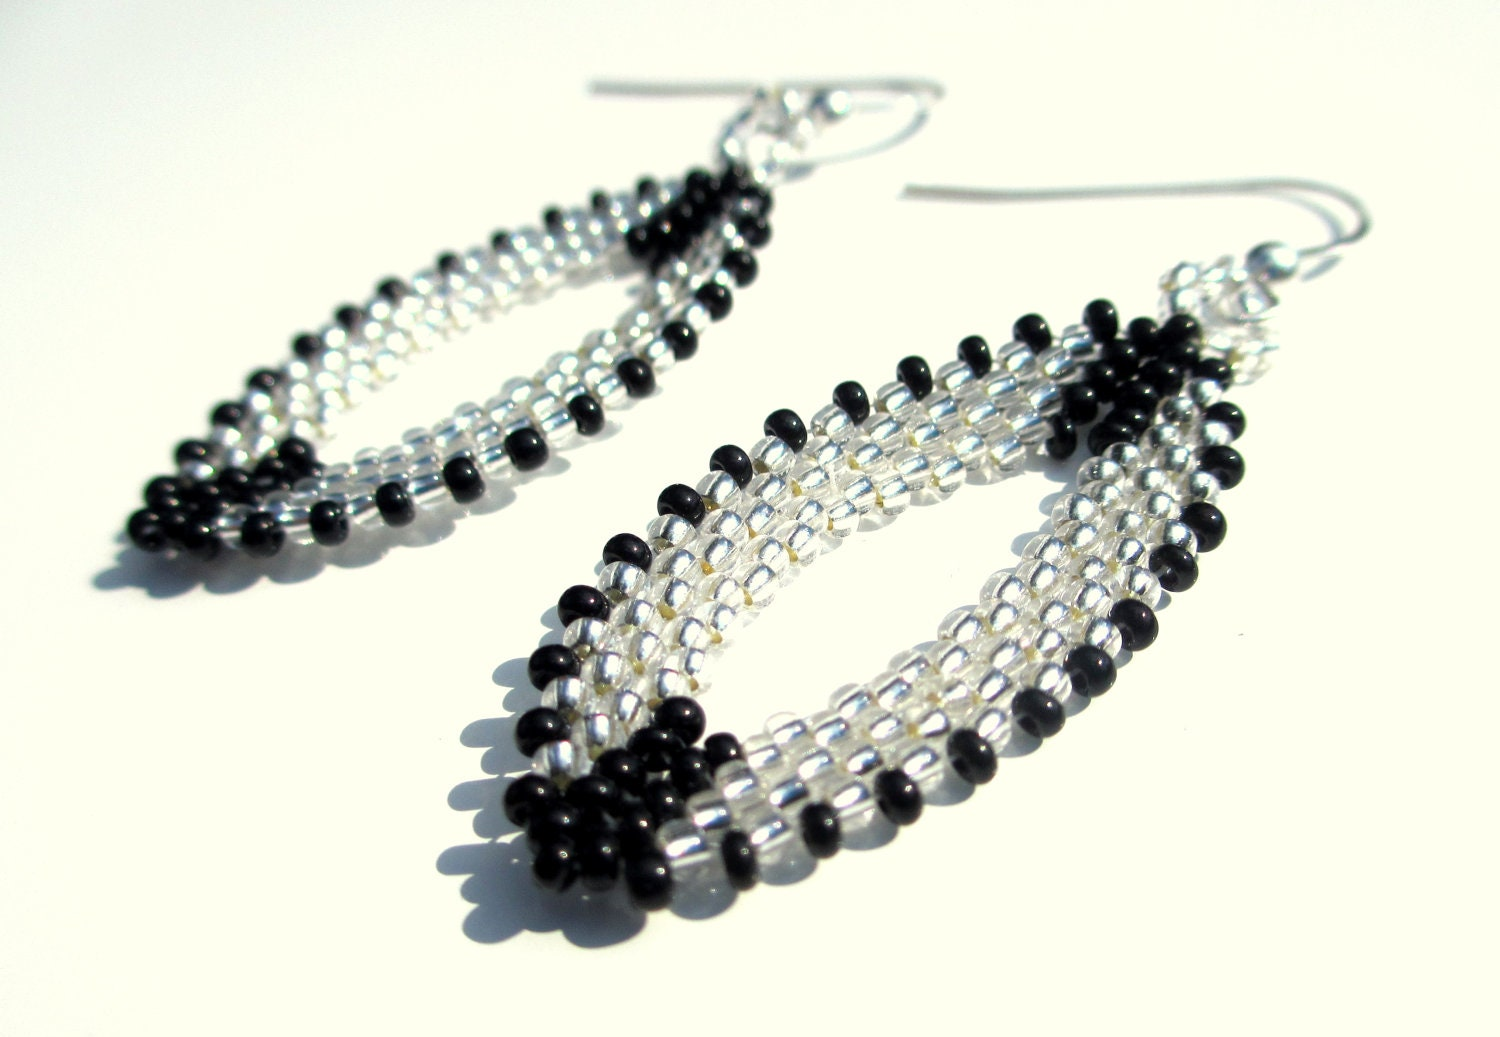 Handcrafted Beaded Earrings in Black and Silver with S.S. Ear Wire- Made to Order - creationsbymarci